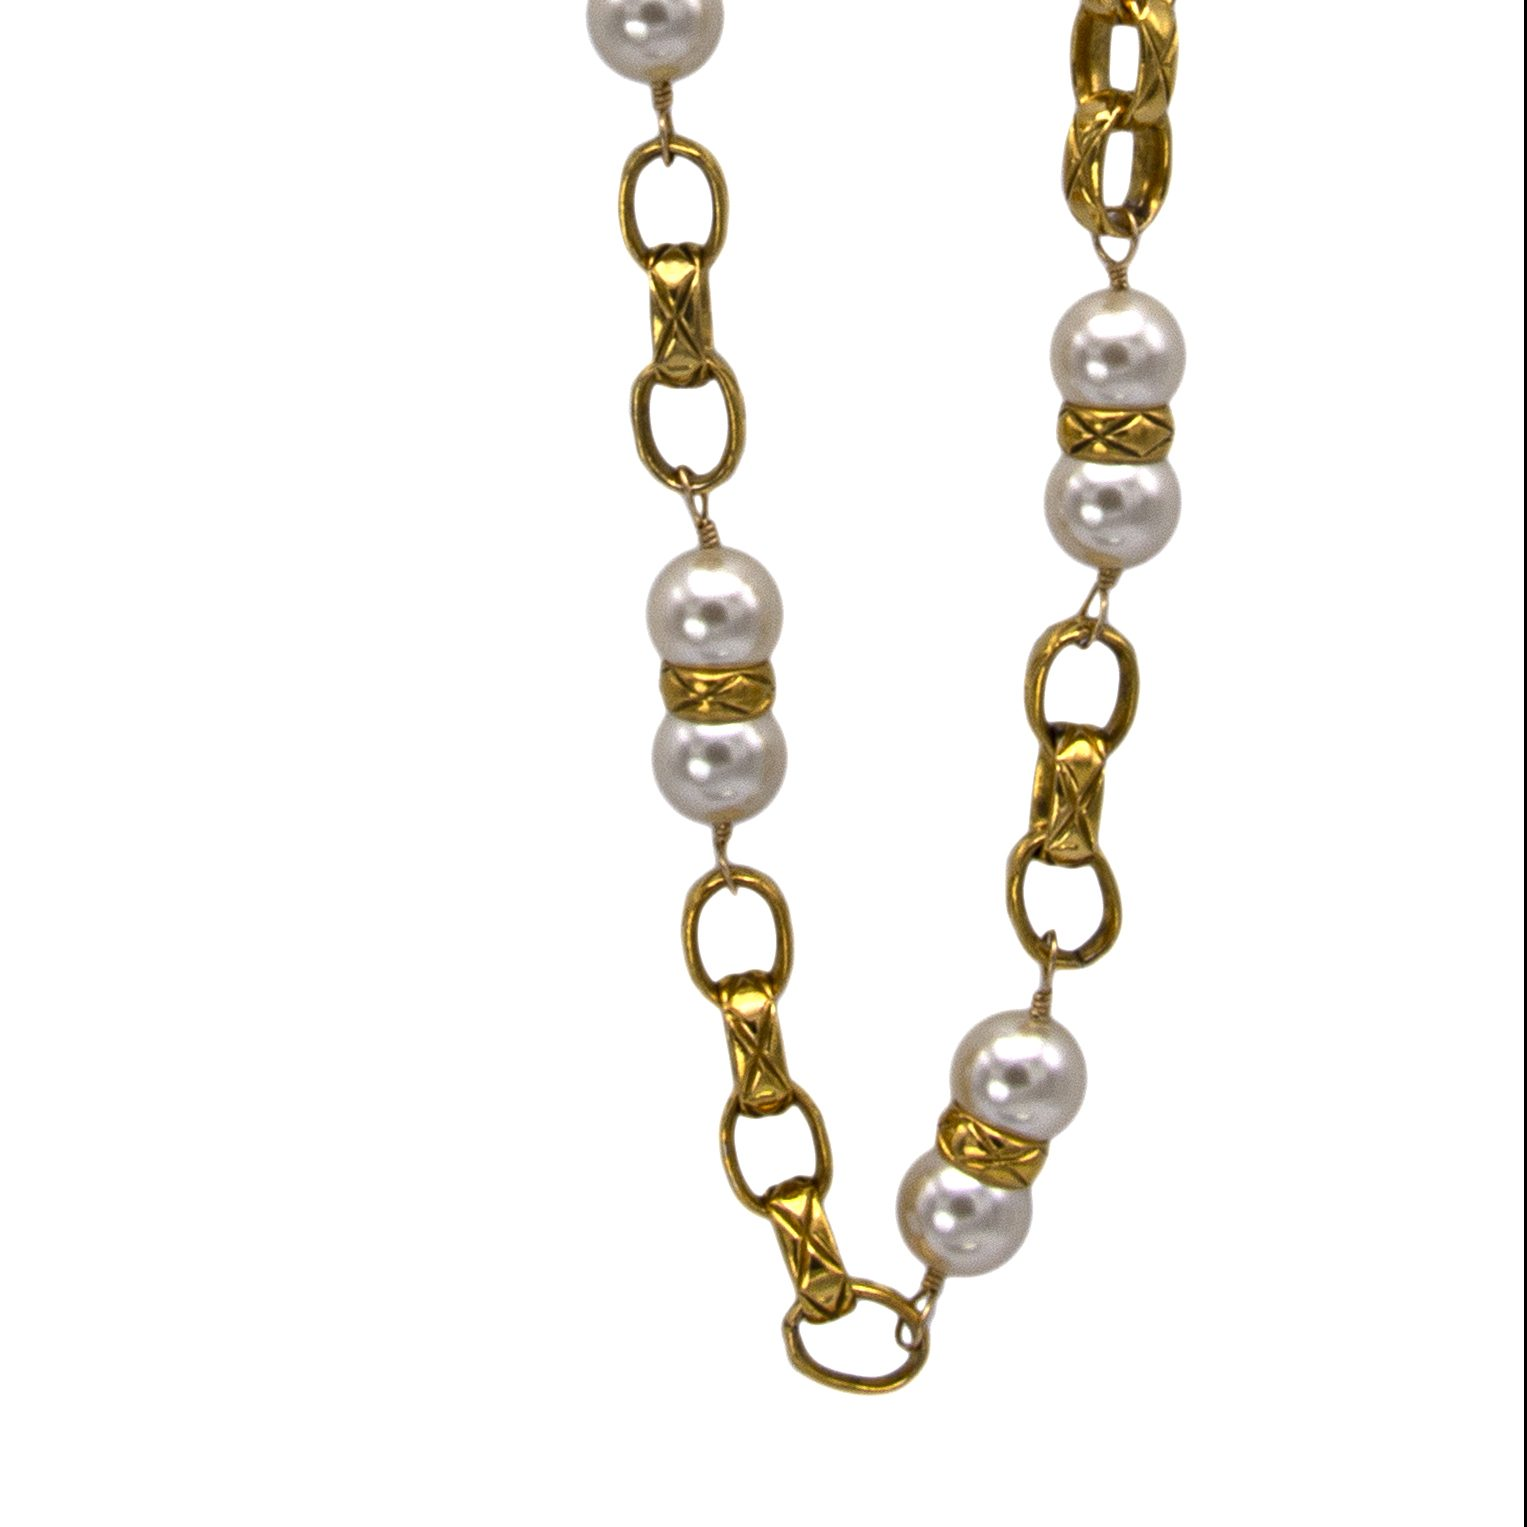 "Chanel 35"" Oval Link Chain with Pearls Bisected by Quilted Band, 1986"